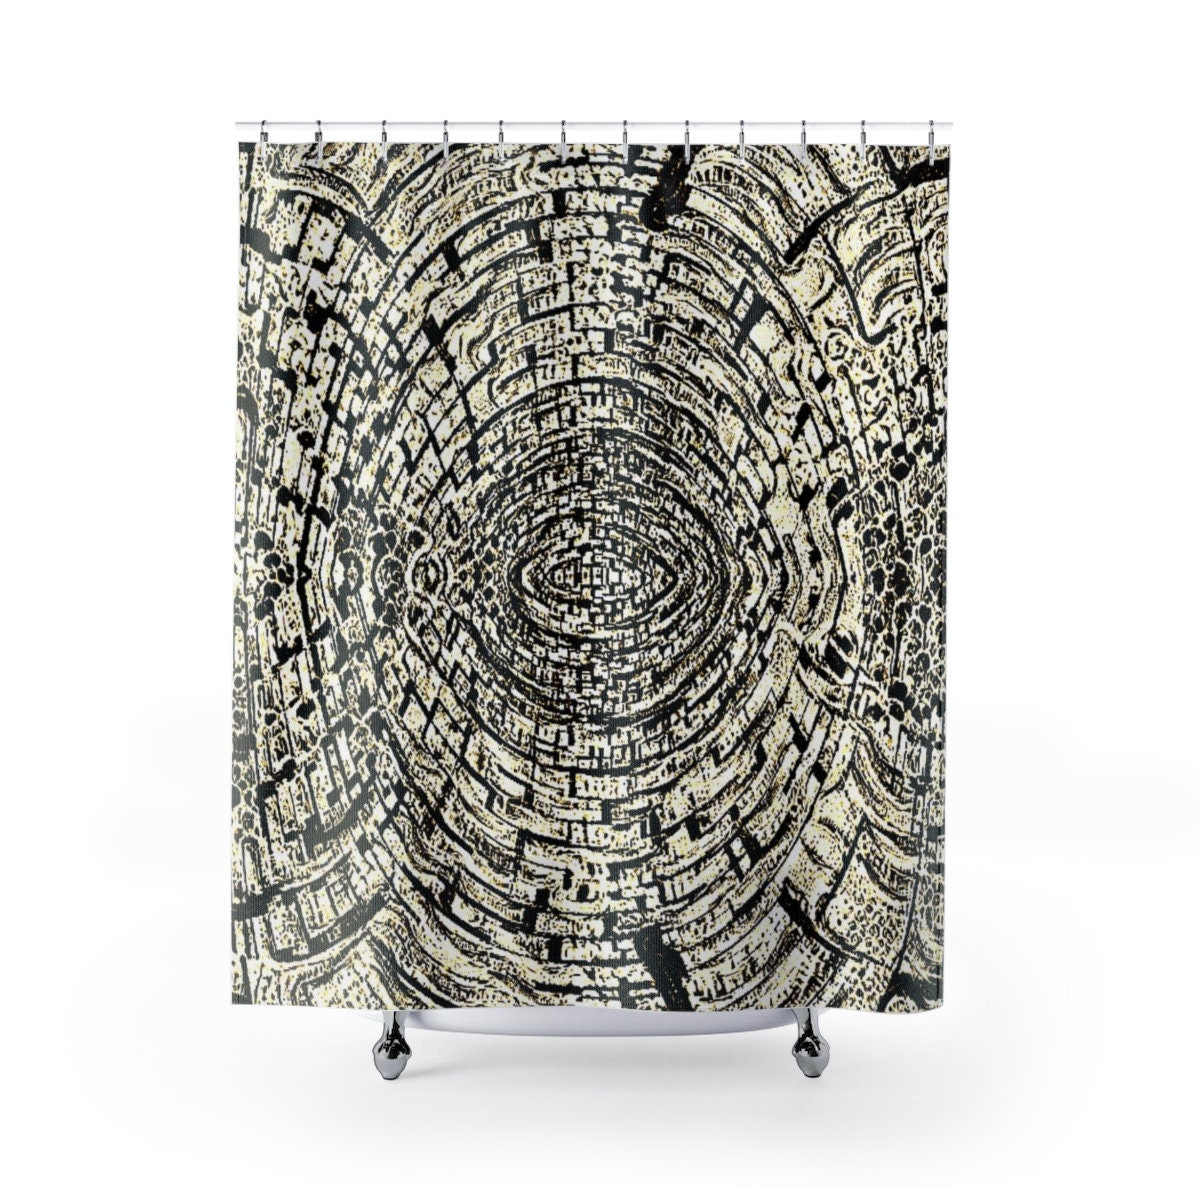 Mojave Surem Cloth Shower Curtains An Organic Pattern Nature Inspired Interesting To Gaze Upon Would Fit In Almost Any Bathroom